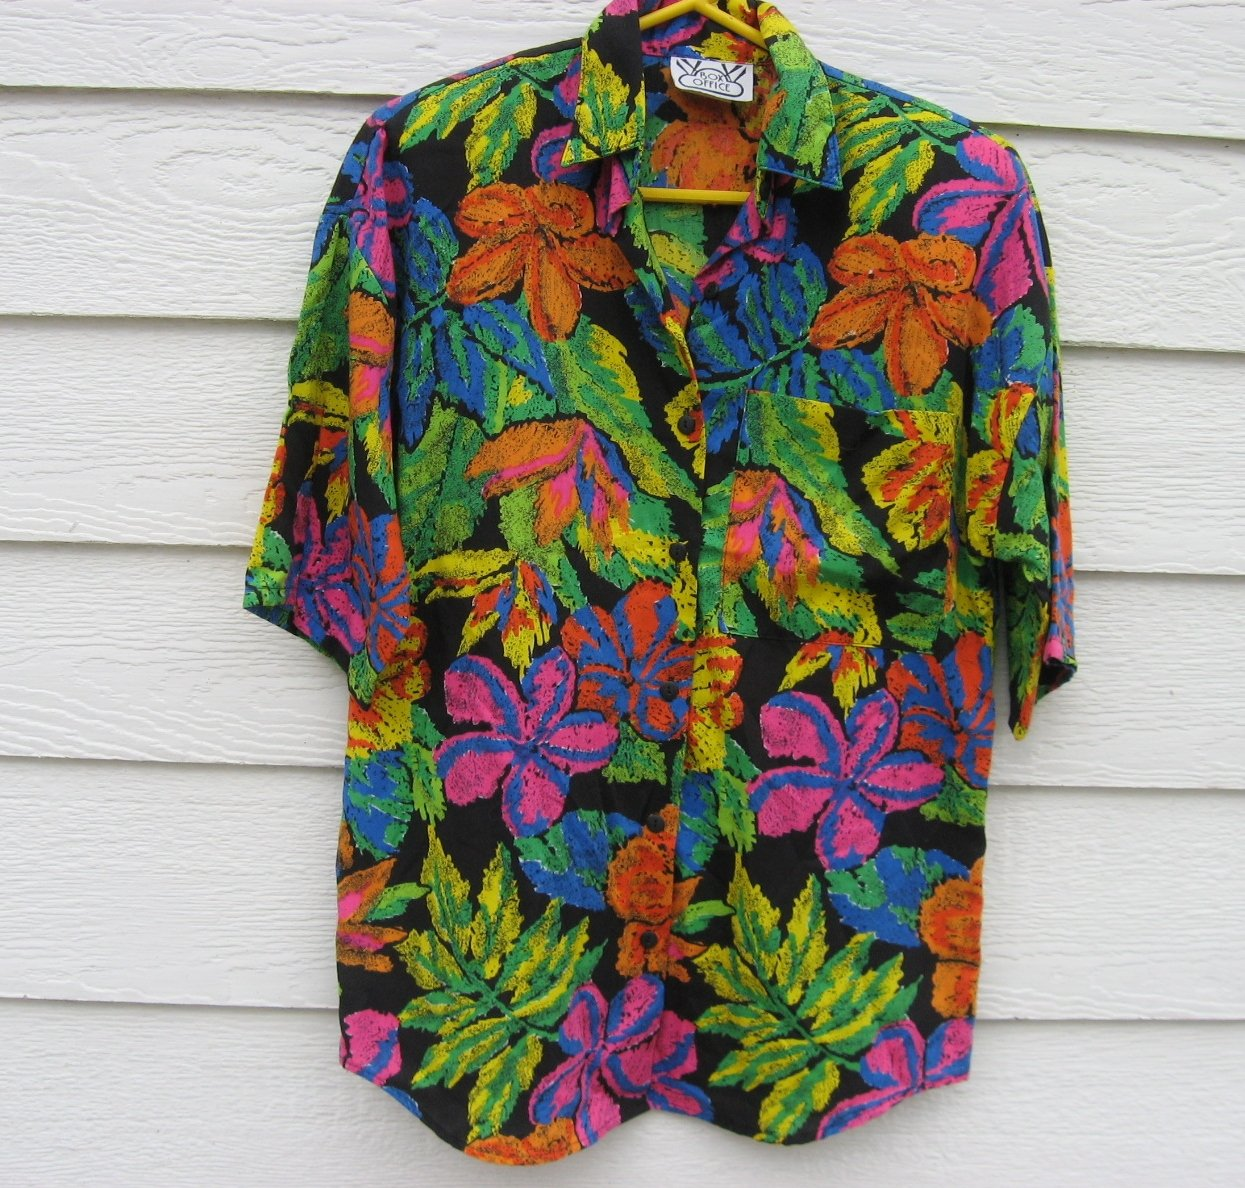 Box Office Small Black Blouse Small 8/10 39 chest Bold Print Shirt Padded Shoulders